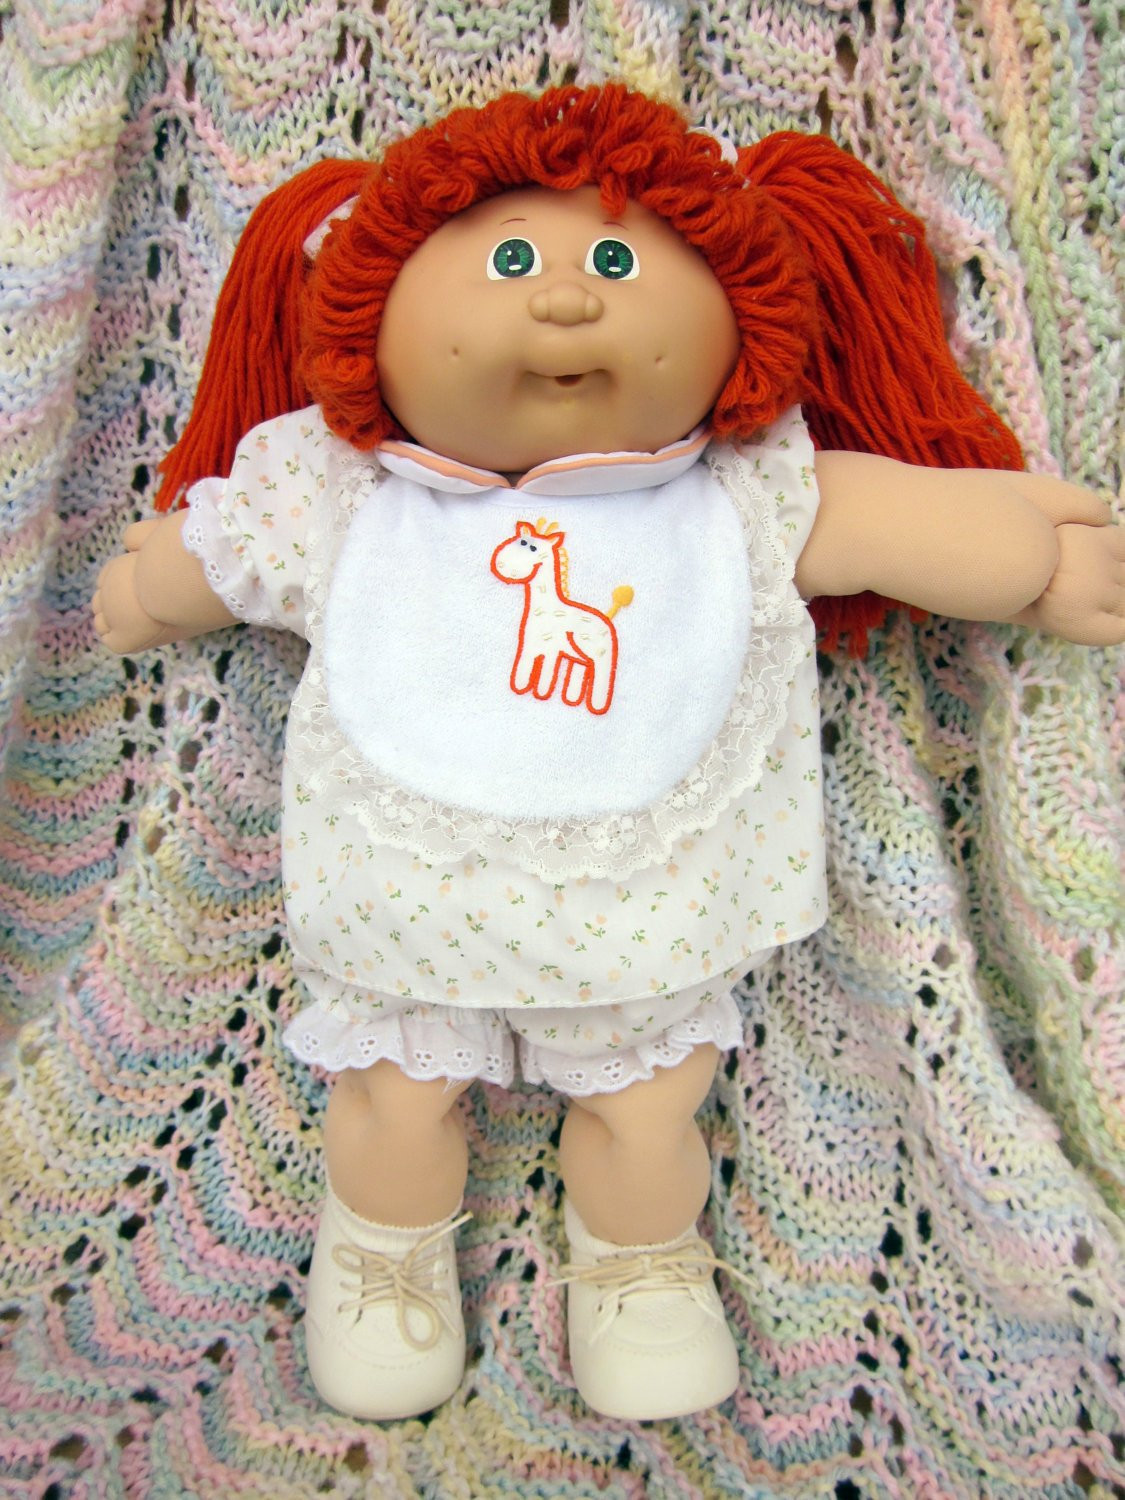 Lovely Vintage Cabbage Patch Kid Doll Red Hair Green Eyes Collectible Cabbage Patch Dolls Of Luxury 42 Pics Collectible Cabbage Patch Dolls